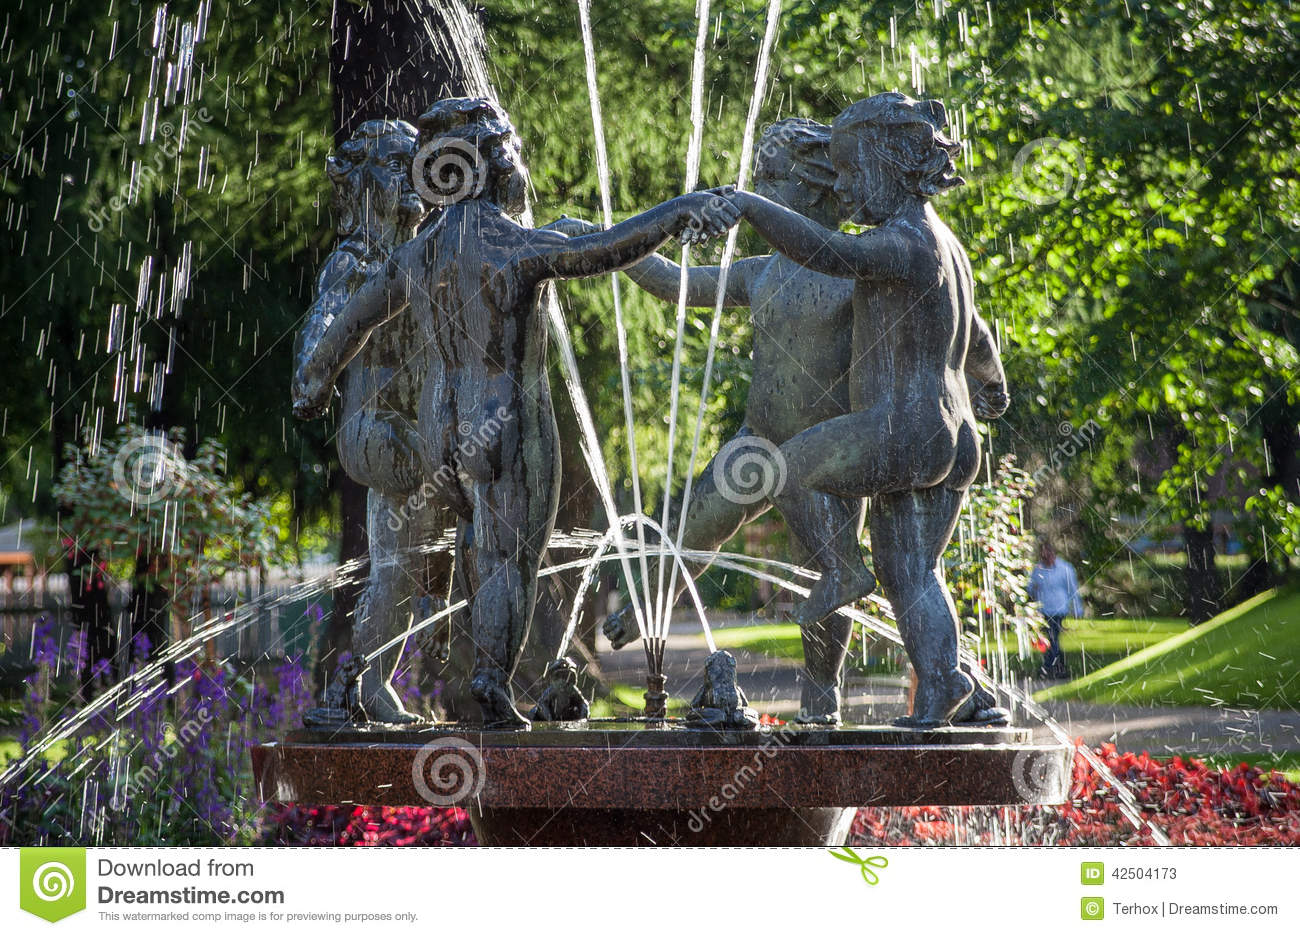 Water fountains with statues - Dancing Statues Water Fountain Stock Photos